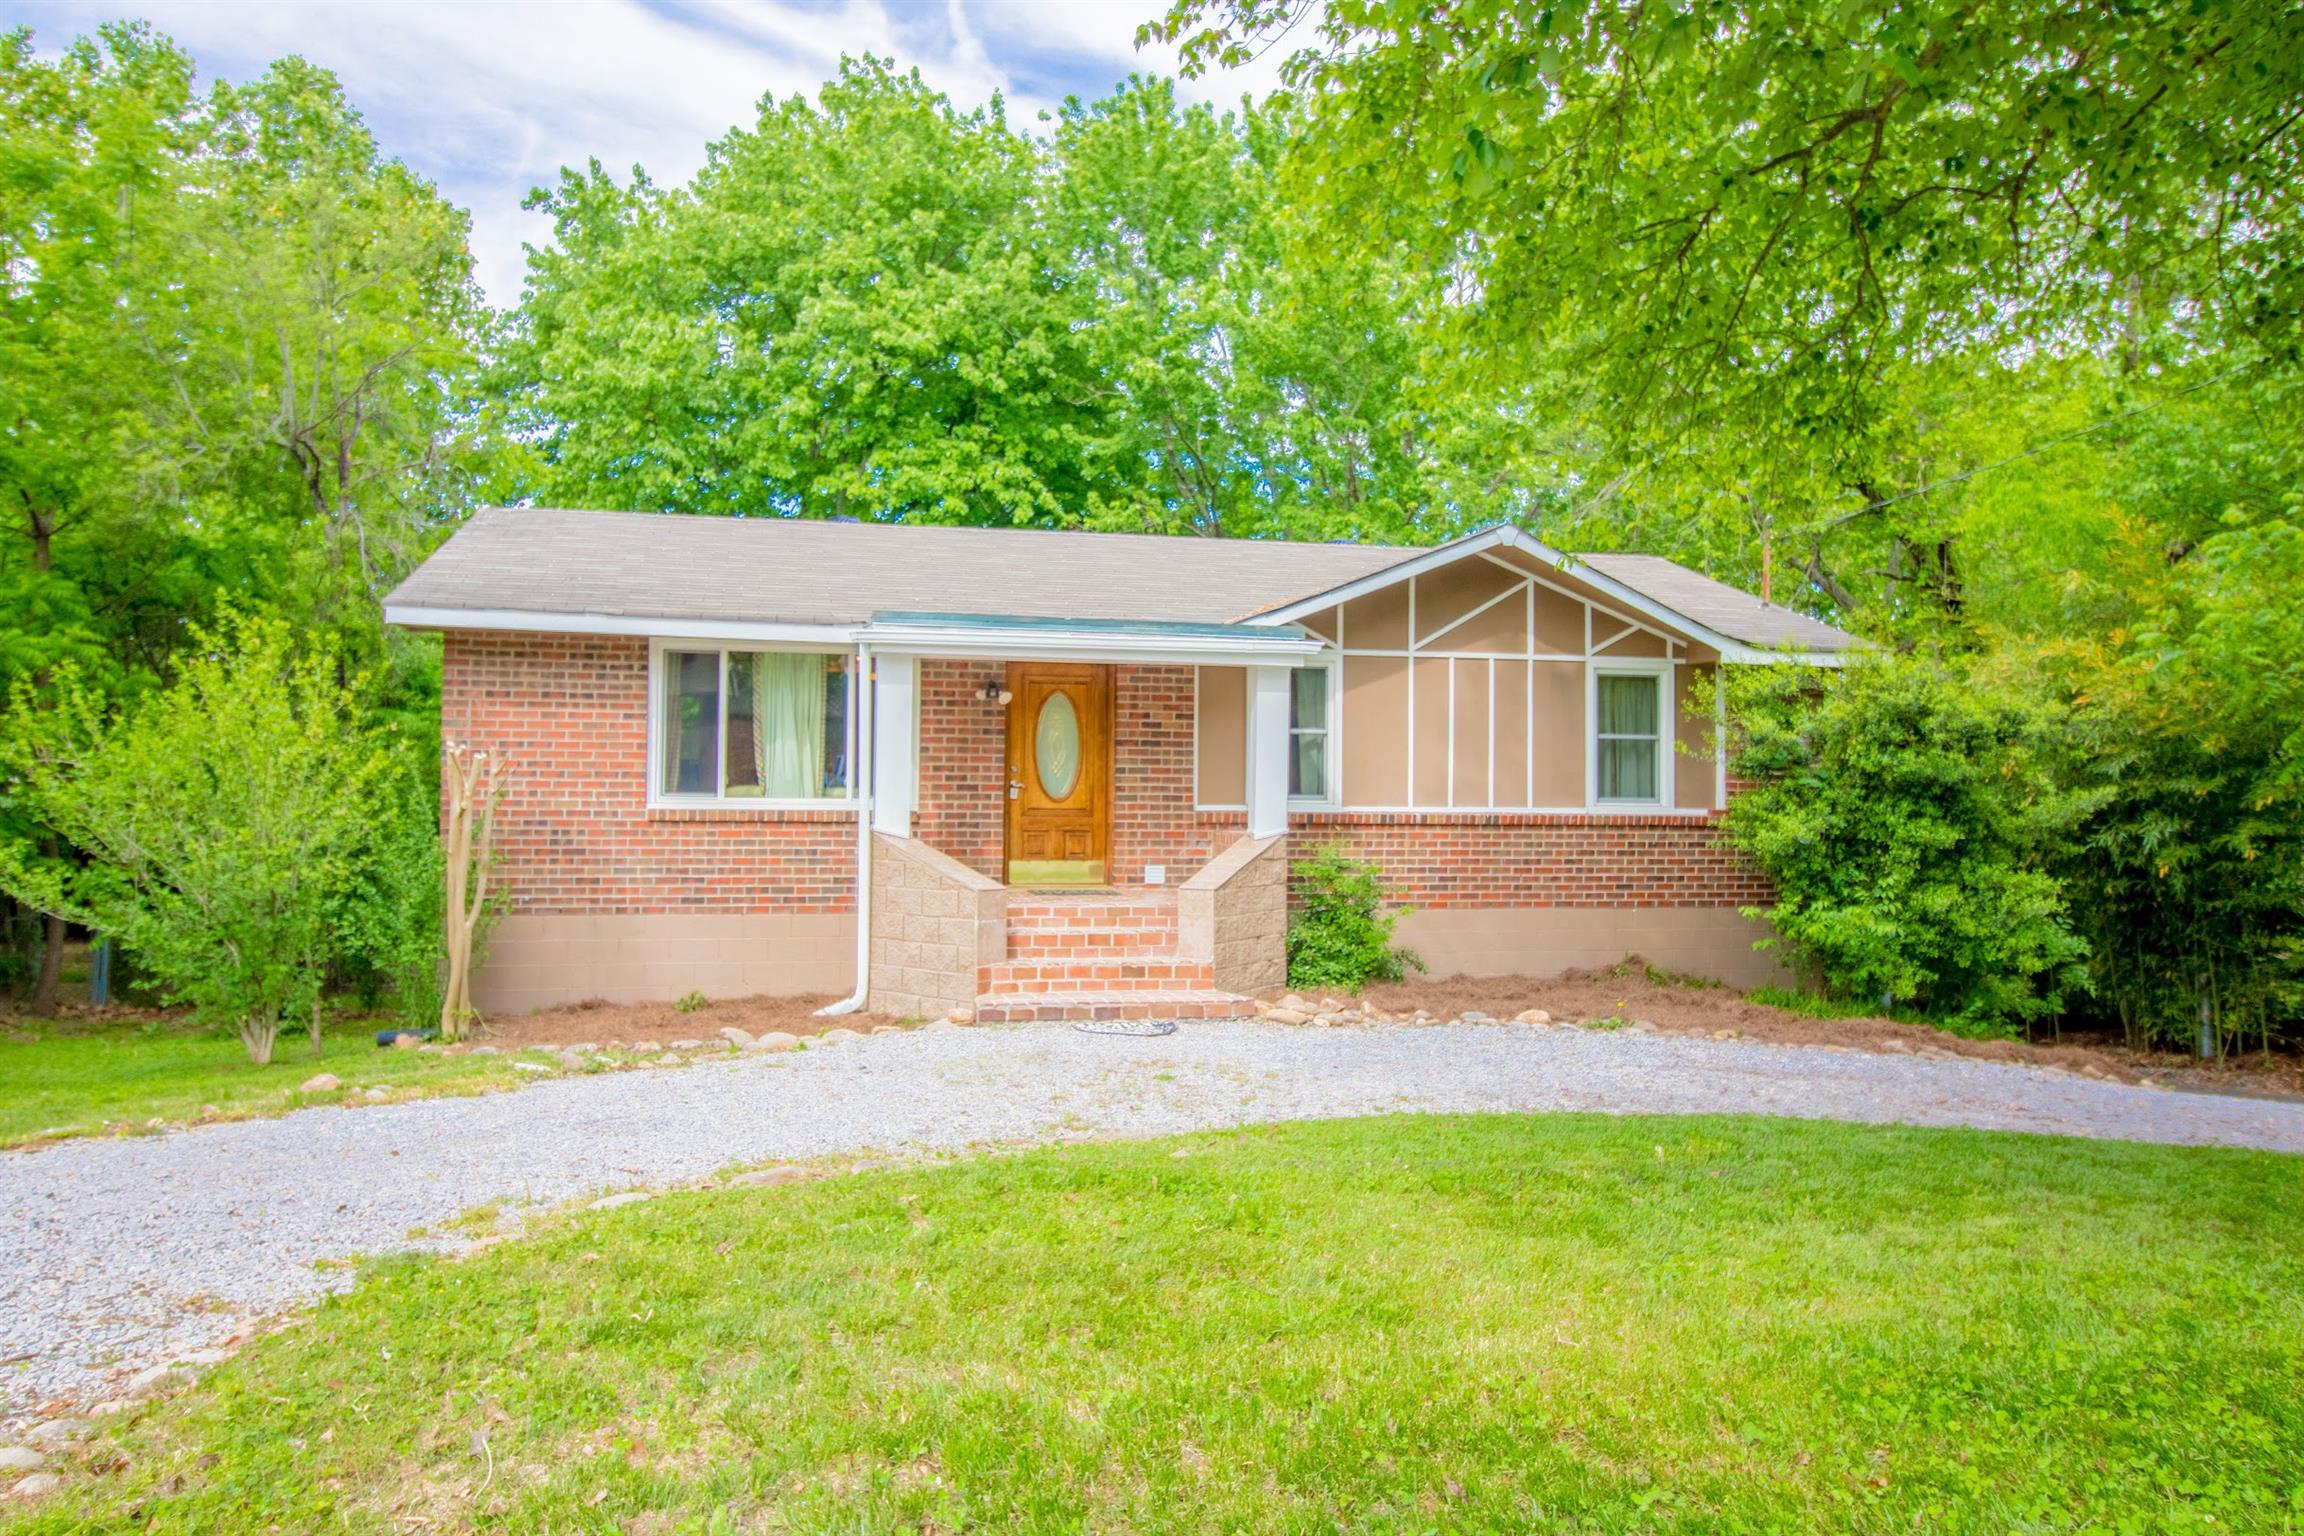 278 Delvin Dr., Nashville-Antioch in Davidson County County, TN 37013 Home for Sale